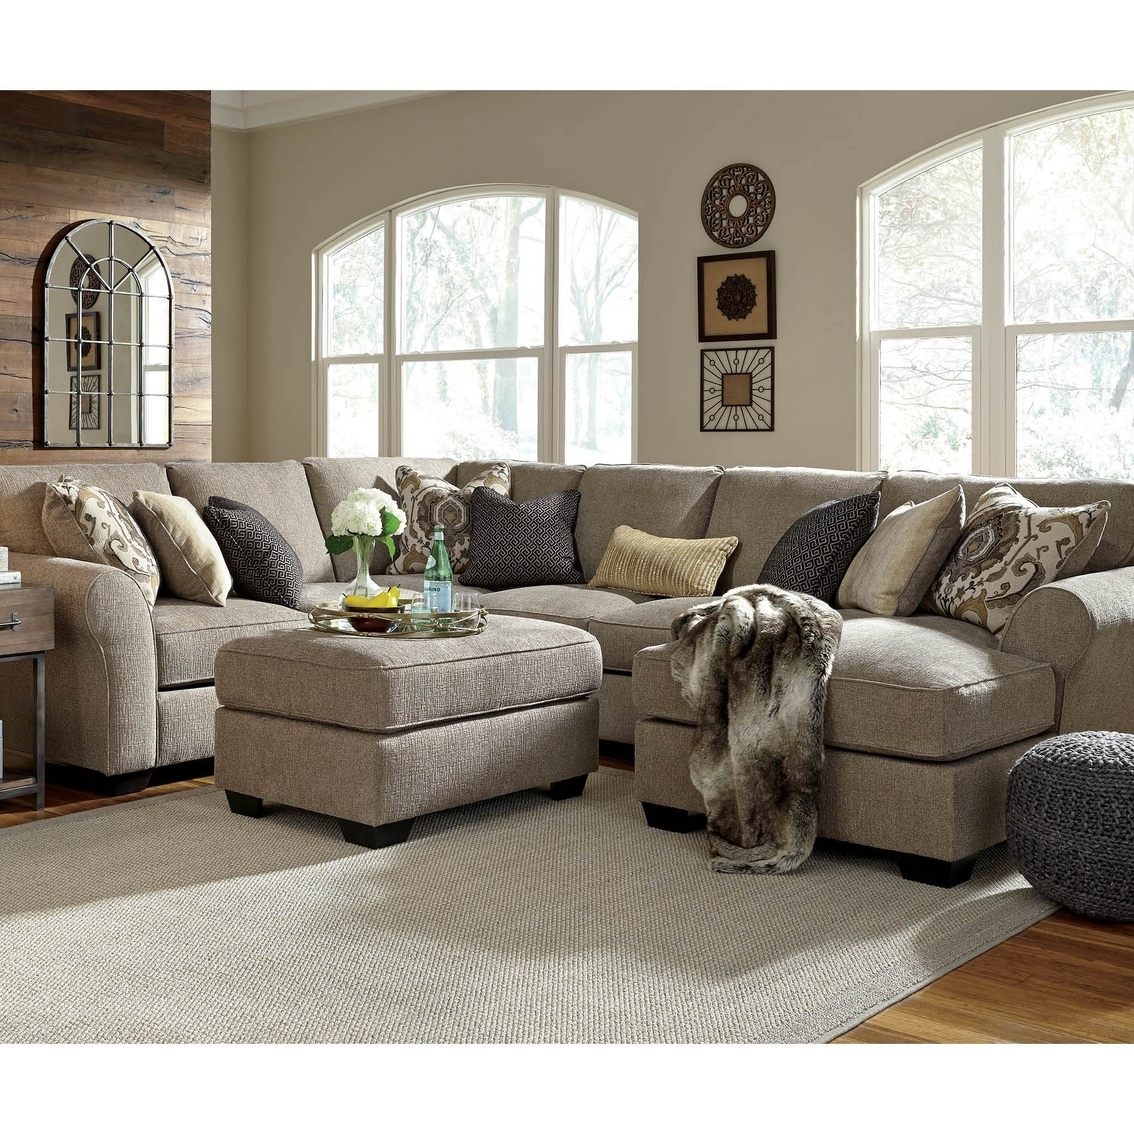 Laf Sofa Raf Loveseat | Baci Living Room Throughout Turdur 3 Piece Sectionals With Raf Loveseat (View 12 of 25)